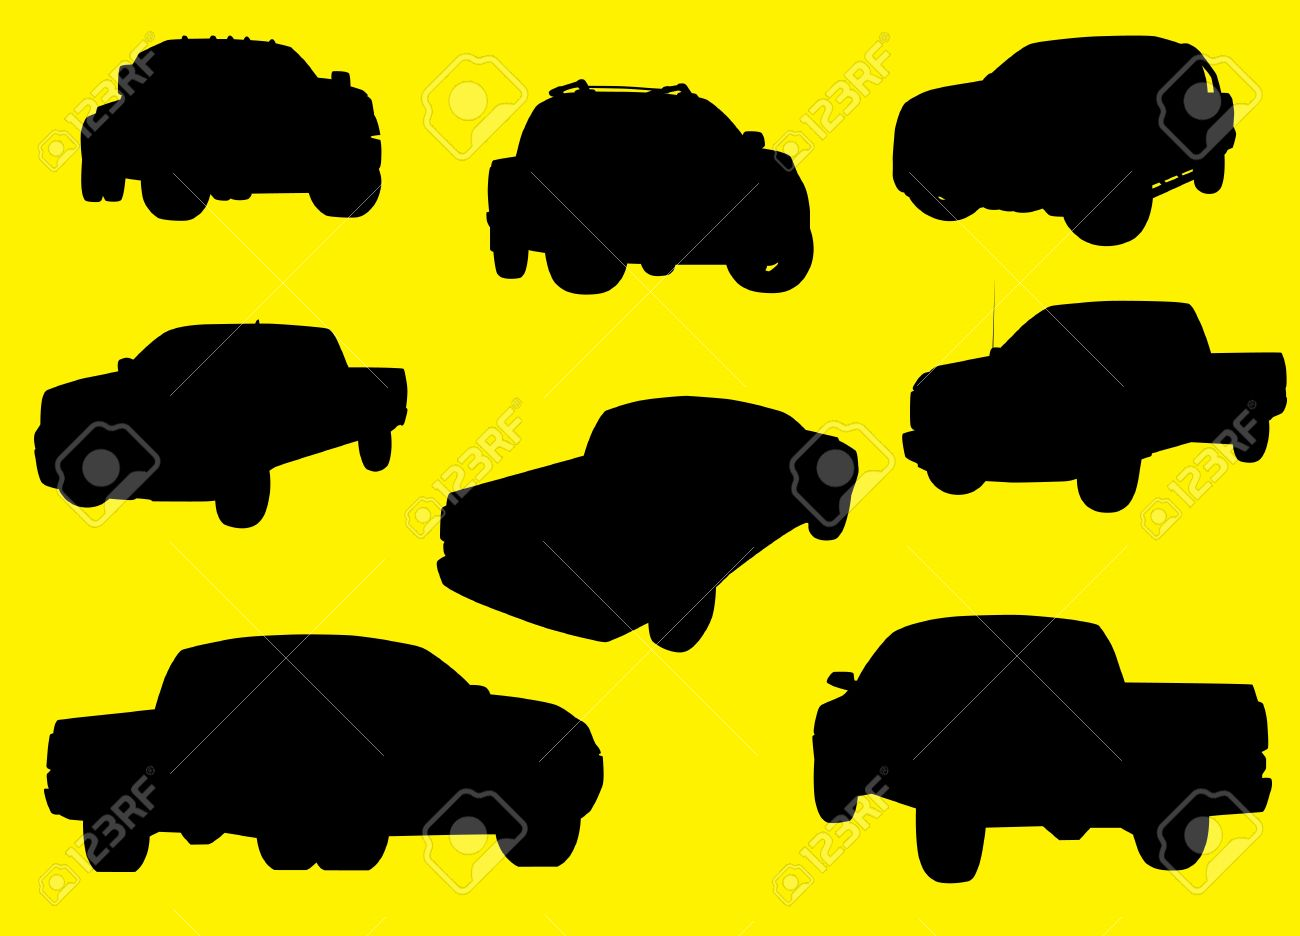 Pick-up trucks silhouettes isolated on yellow background Stock Vector - 12897667